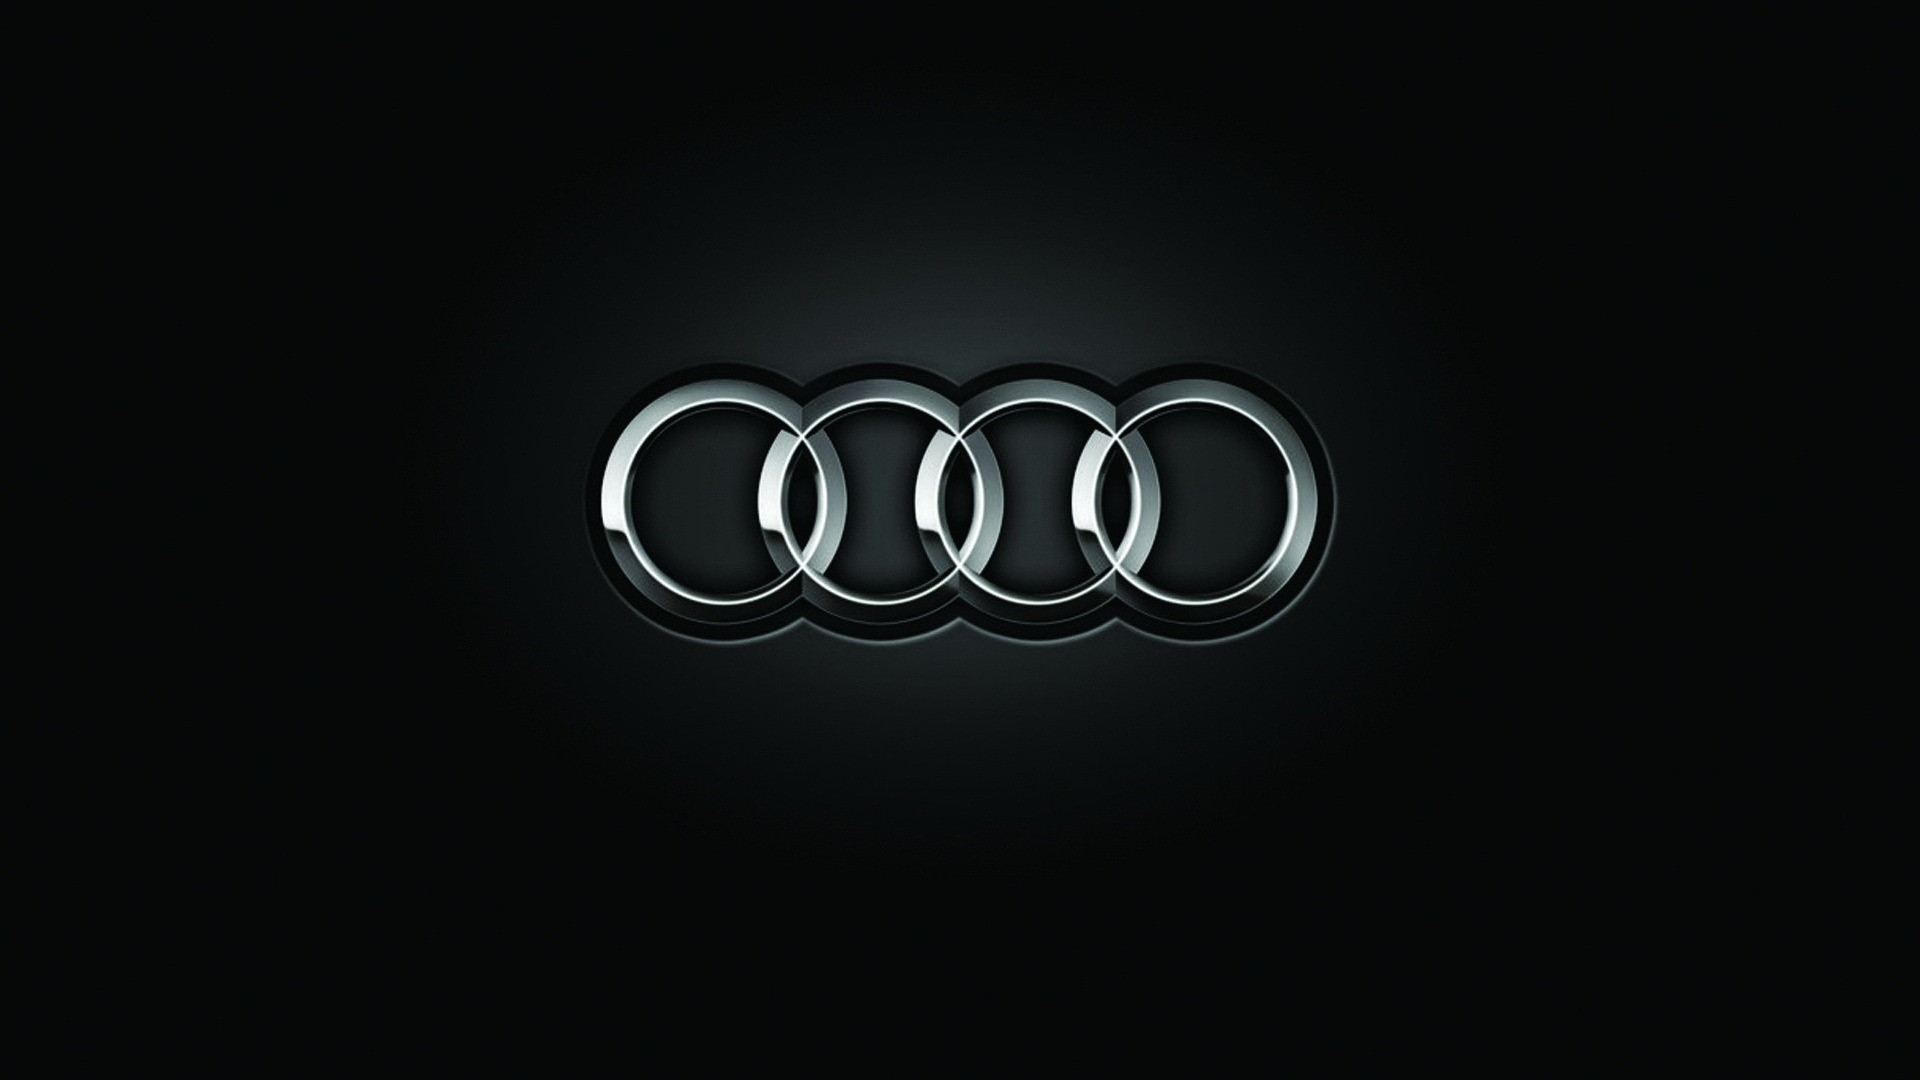 Audi Luxury Car Company Logo HD Photo HD Famous Wallpapers 1920x1080